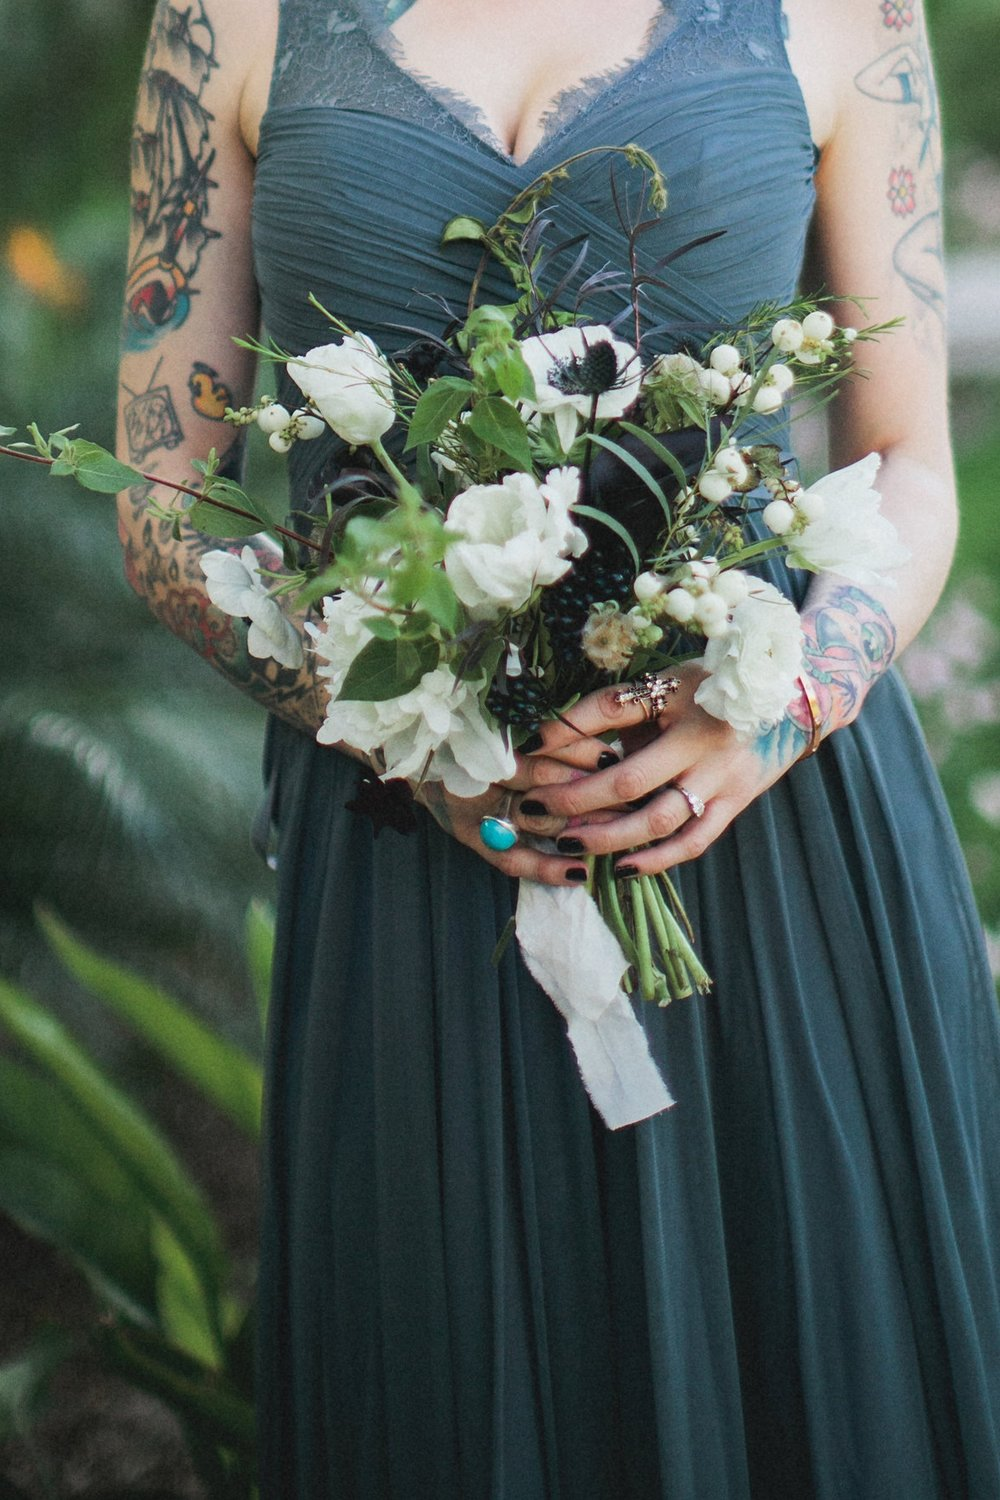 Minimal Bouquet - $80 - This is our most popular bridesmaid bouquet. Give your ladies a sweet little bundle of blooms and foliage for their walk down the aisle then re-purpose the arrangements in the nooks and crannies of your reception.